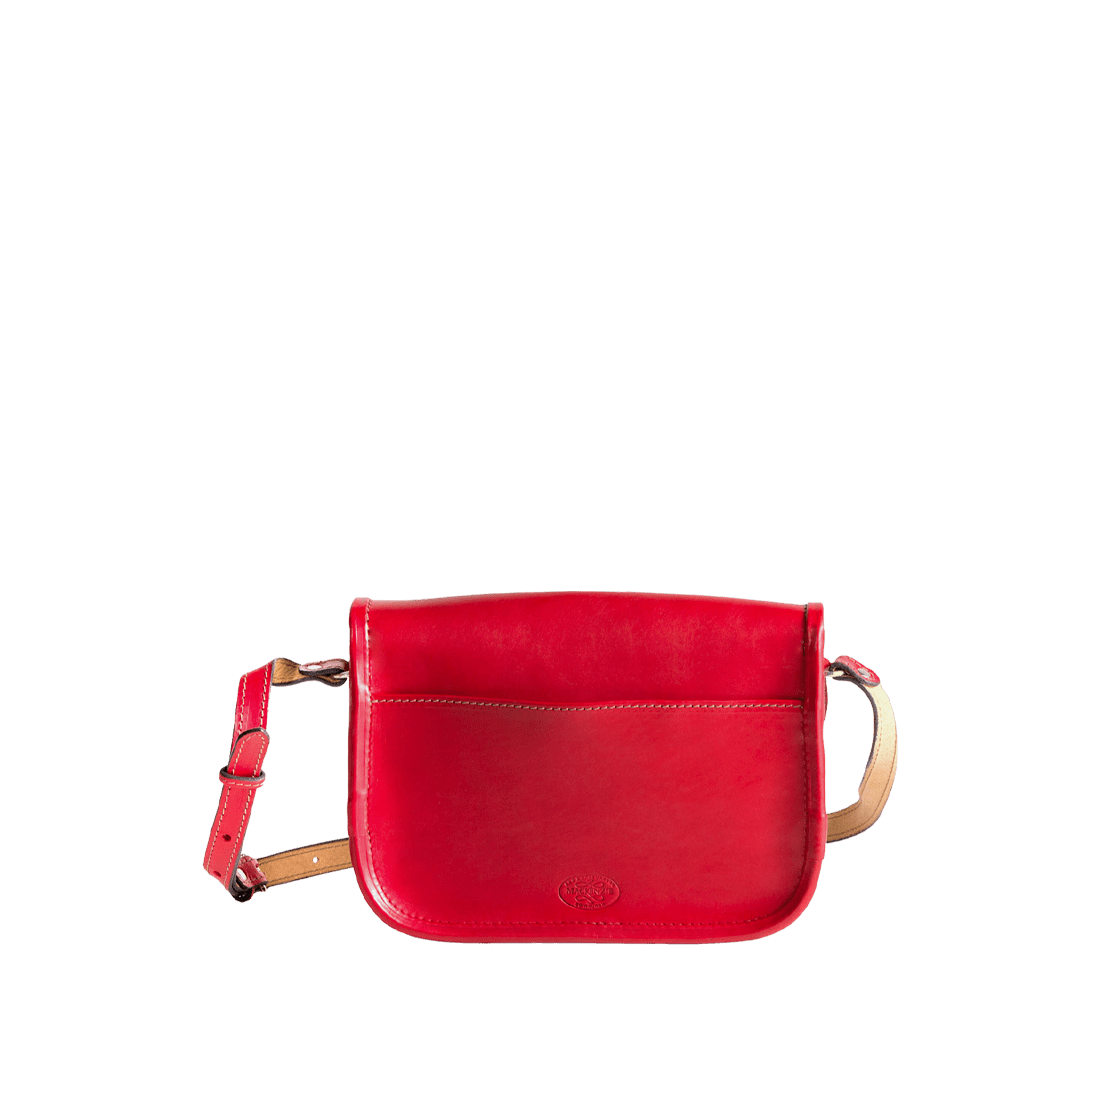 The satchel red